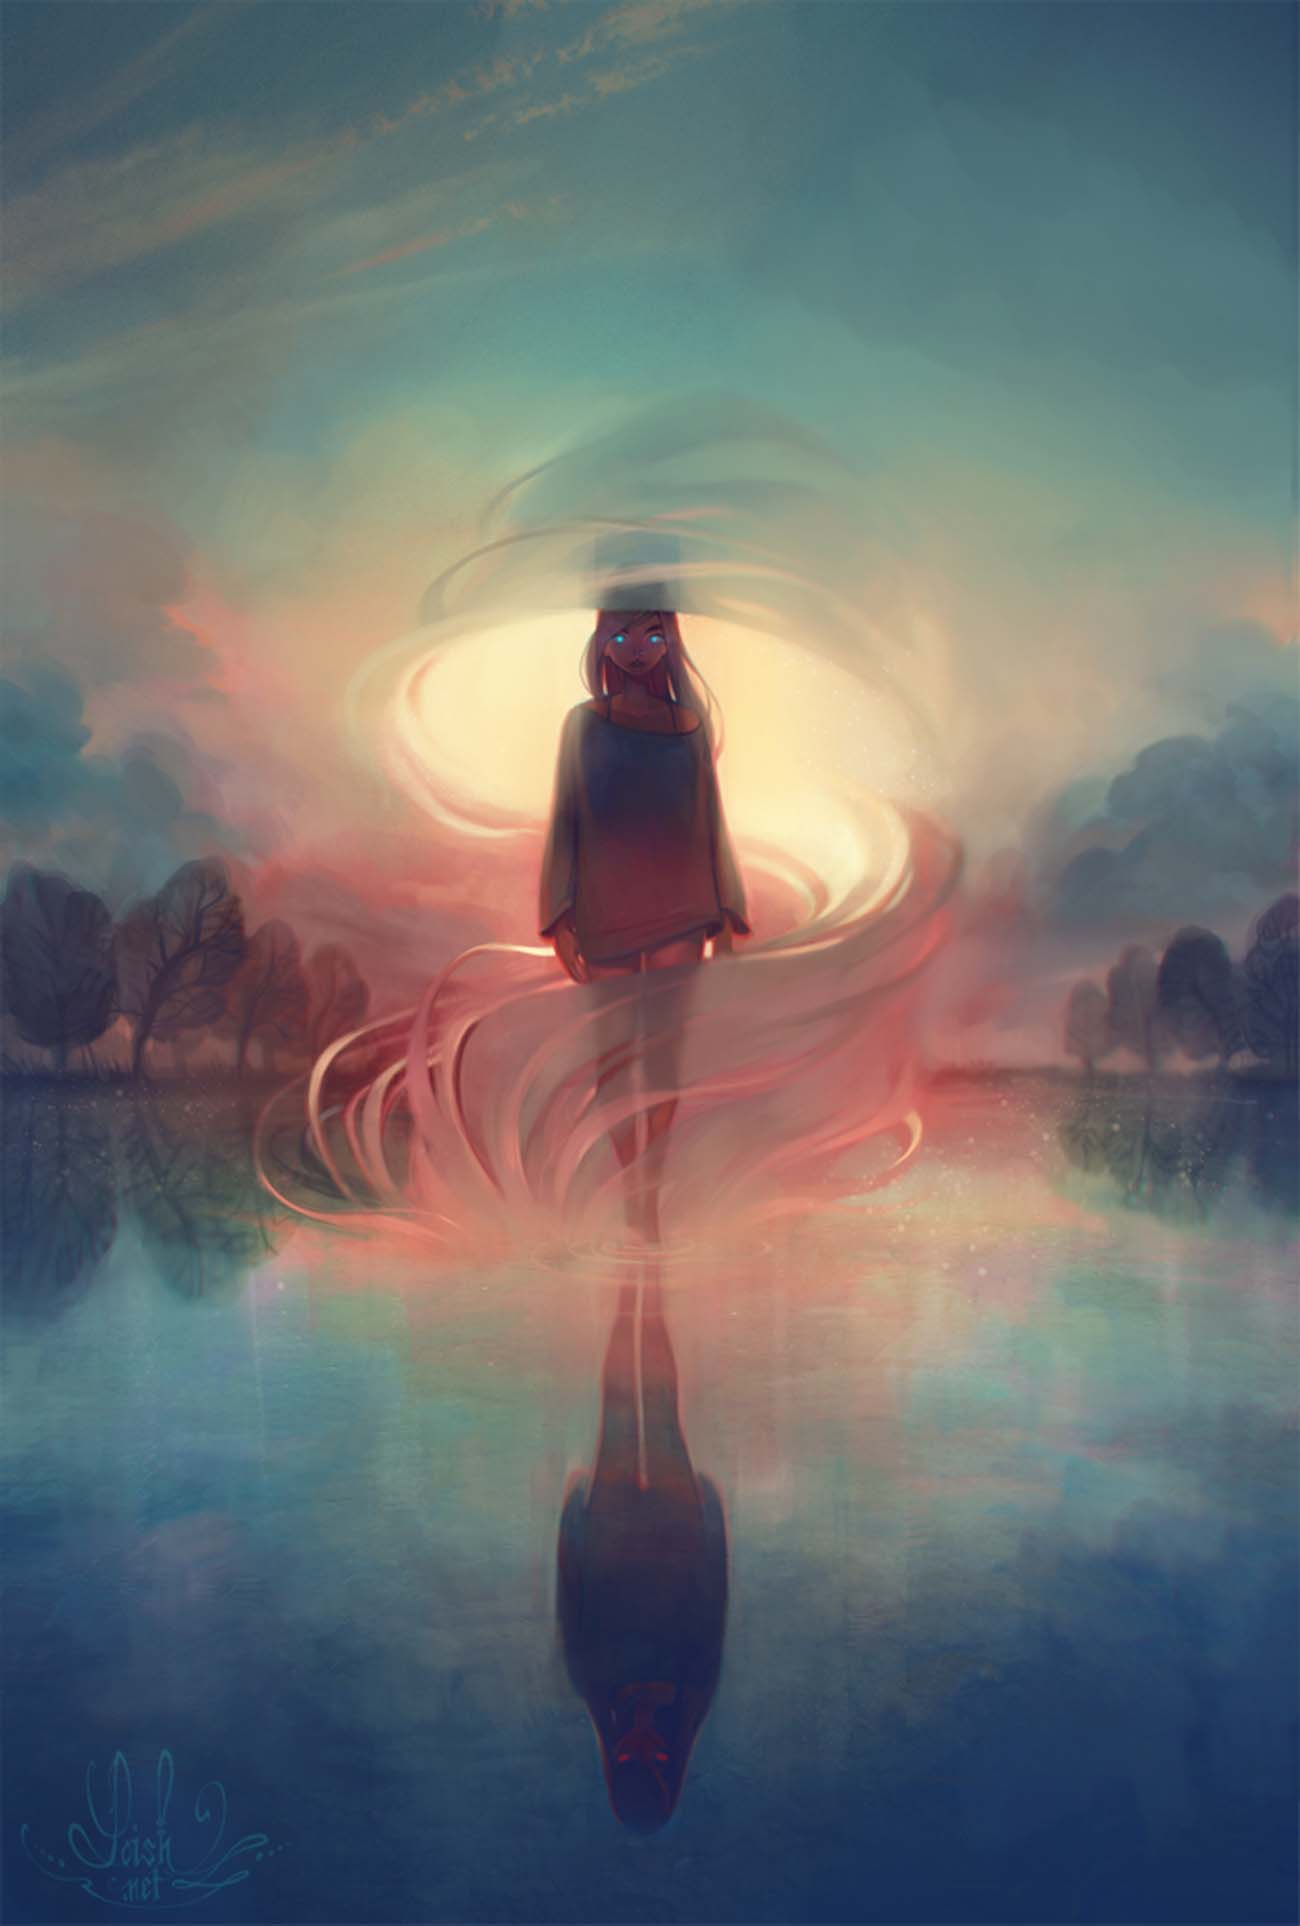 Loish | Digital Painting & Art Inspiration on Paintable.cc